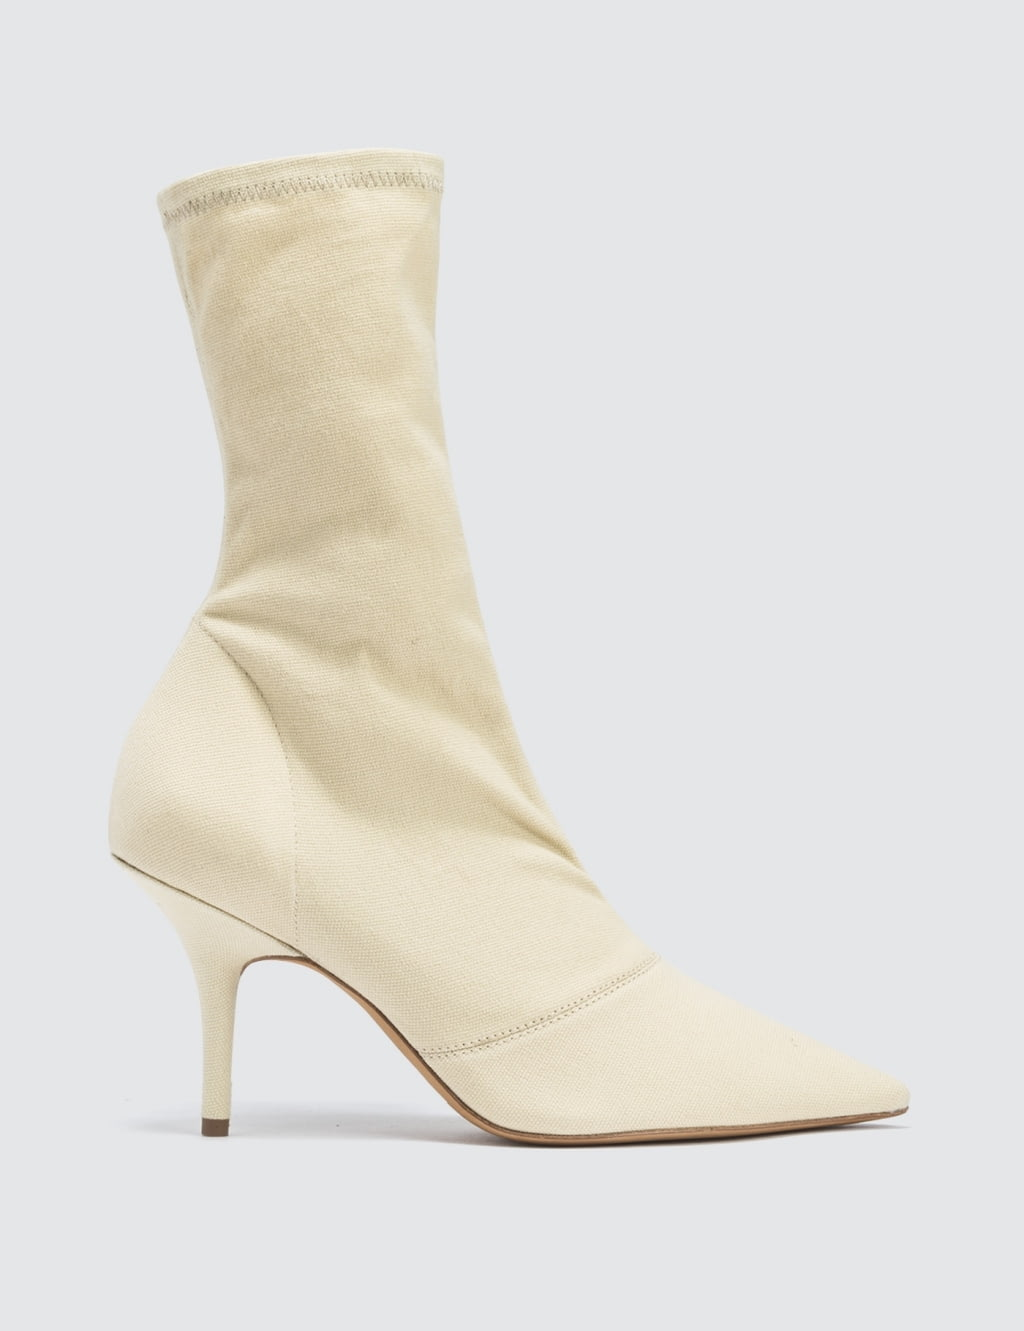 Womens Ankle Boot In Stretch Canvas 70Mm Heel Yeezy by Kanye West P9yTRuiV7h